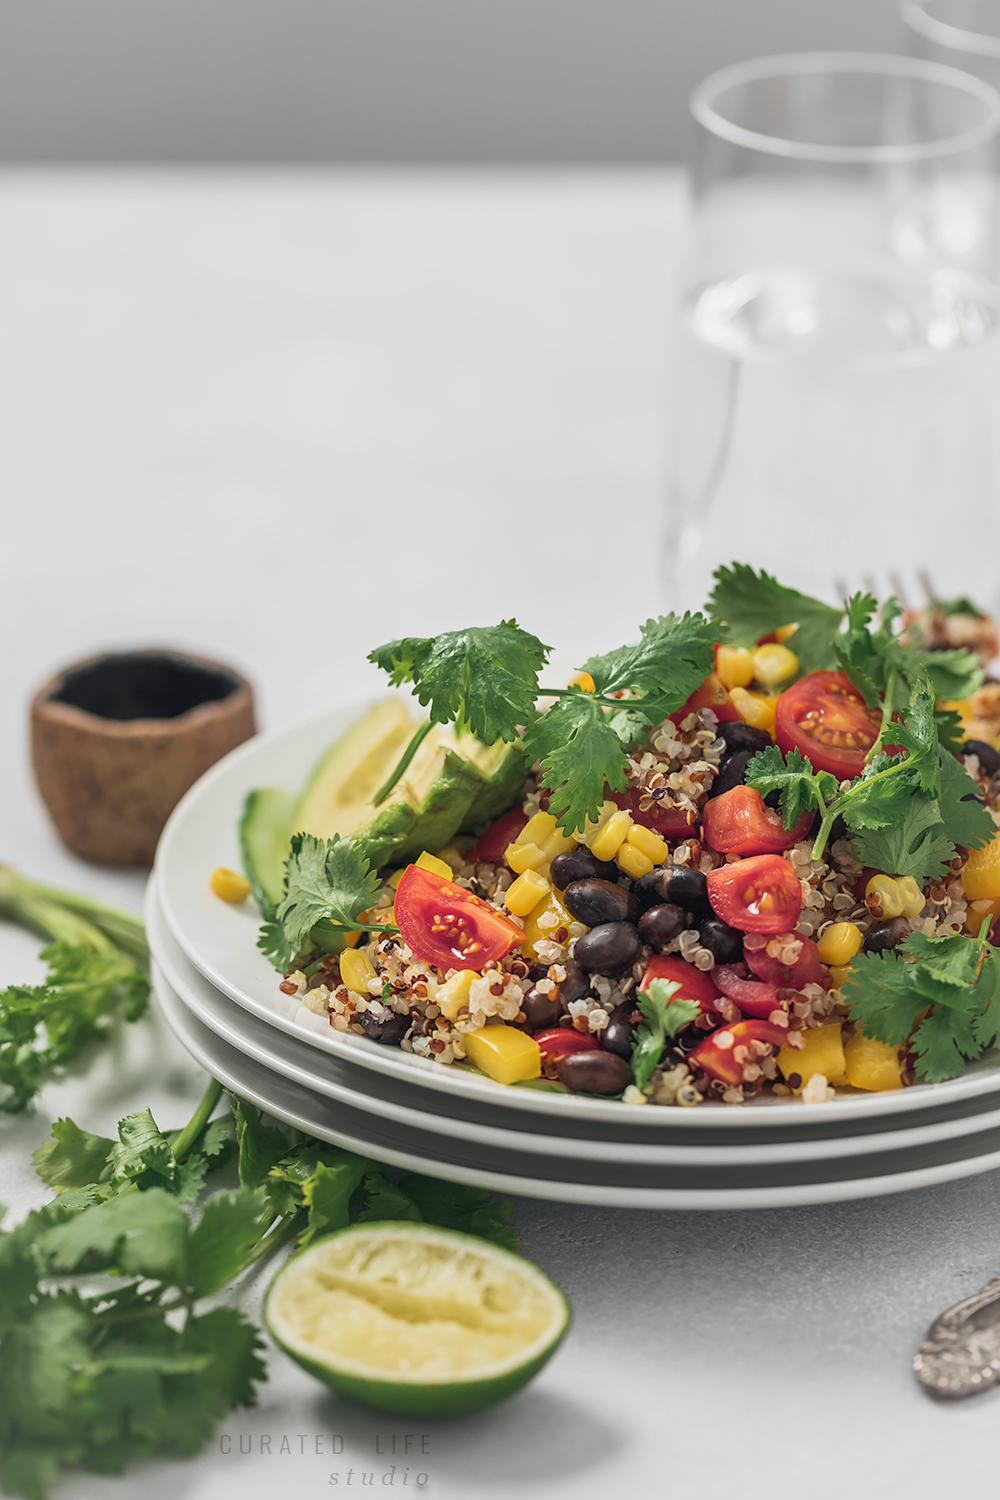 Black Bean Salad surrounded by other plates, creating a festive atmosphere.  (Curated Life Studio)  #quinoa #recipes #avocado #mexican #southwestern #healthy #easy #salad #black-bean #corn #vegan #gluten-free